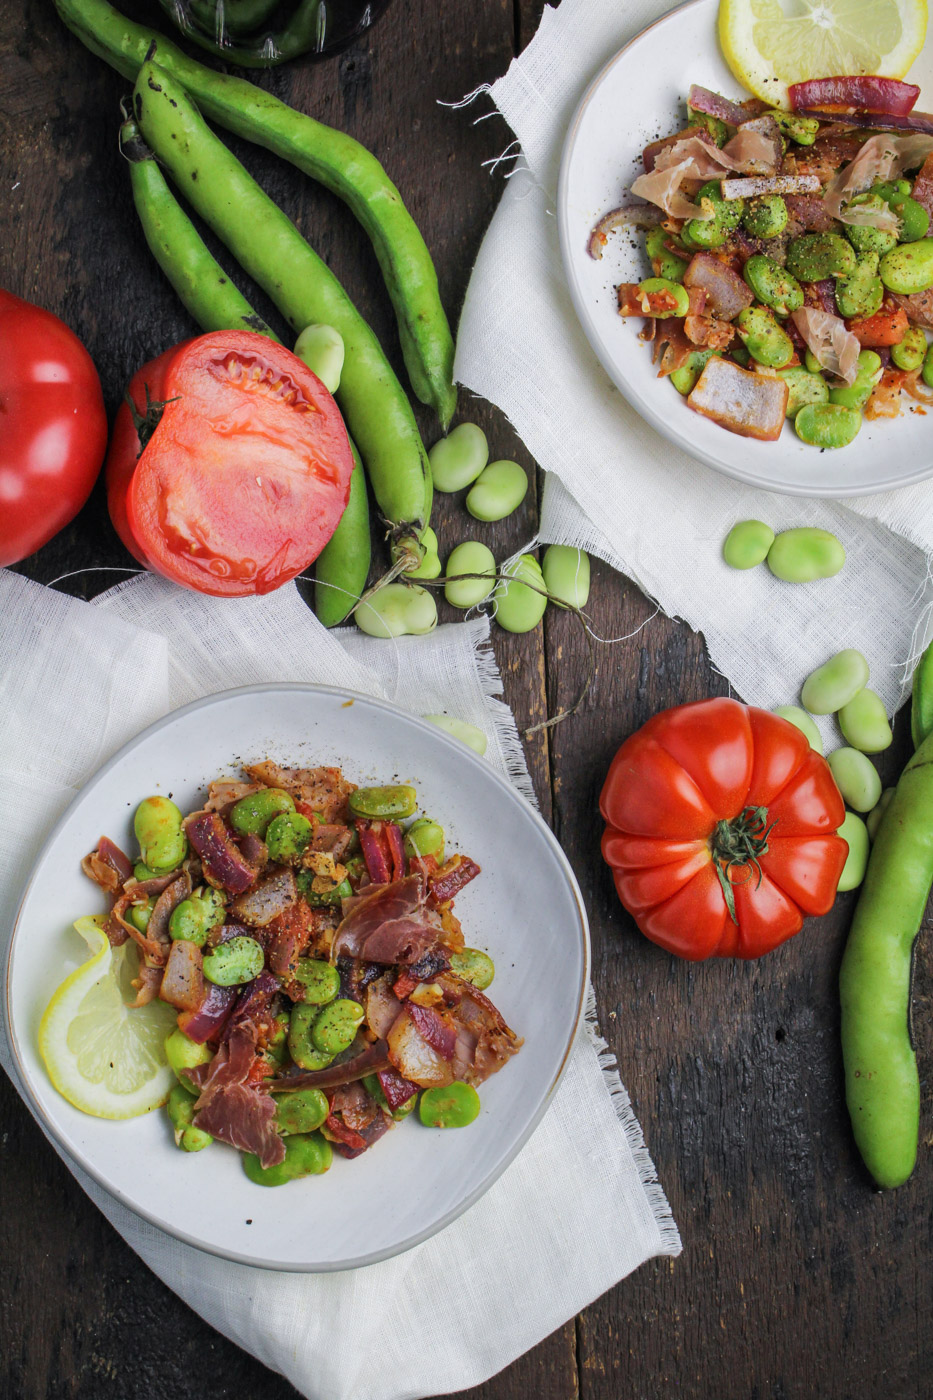 Spanish Fava Bean Salad with Tomatoes and Prosciutto {Katie at the Kitchen Door}